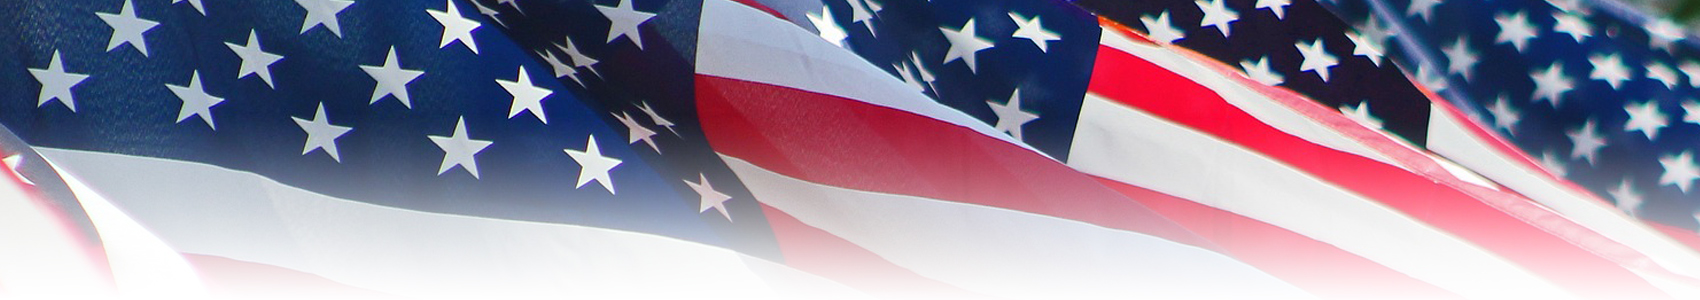 flag - military relocation Hampton Roads VA